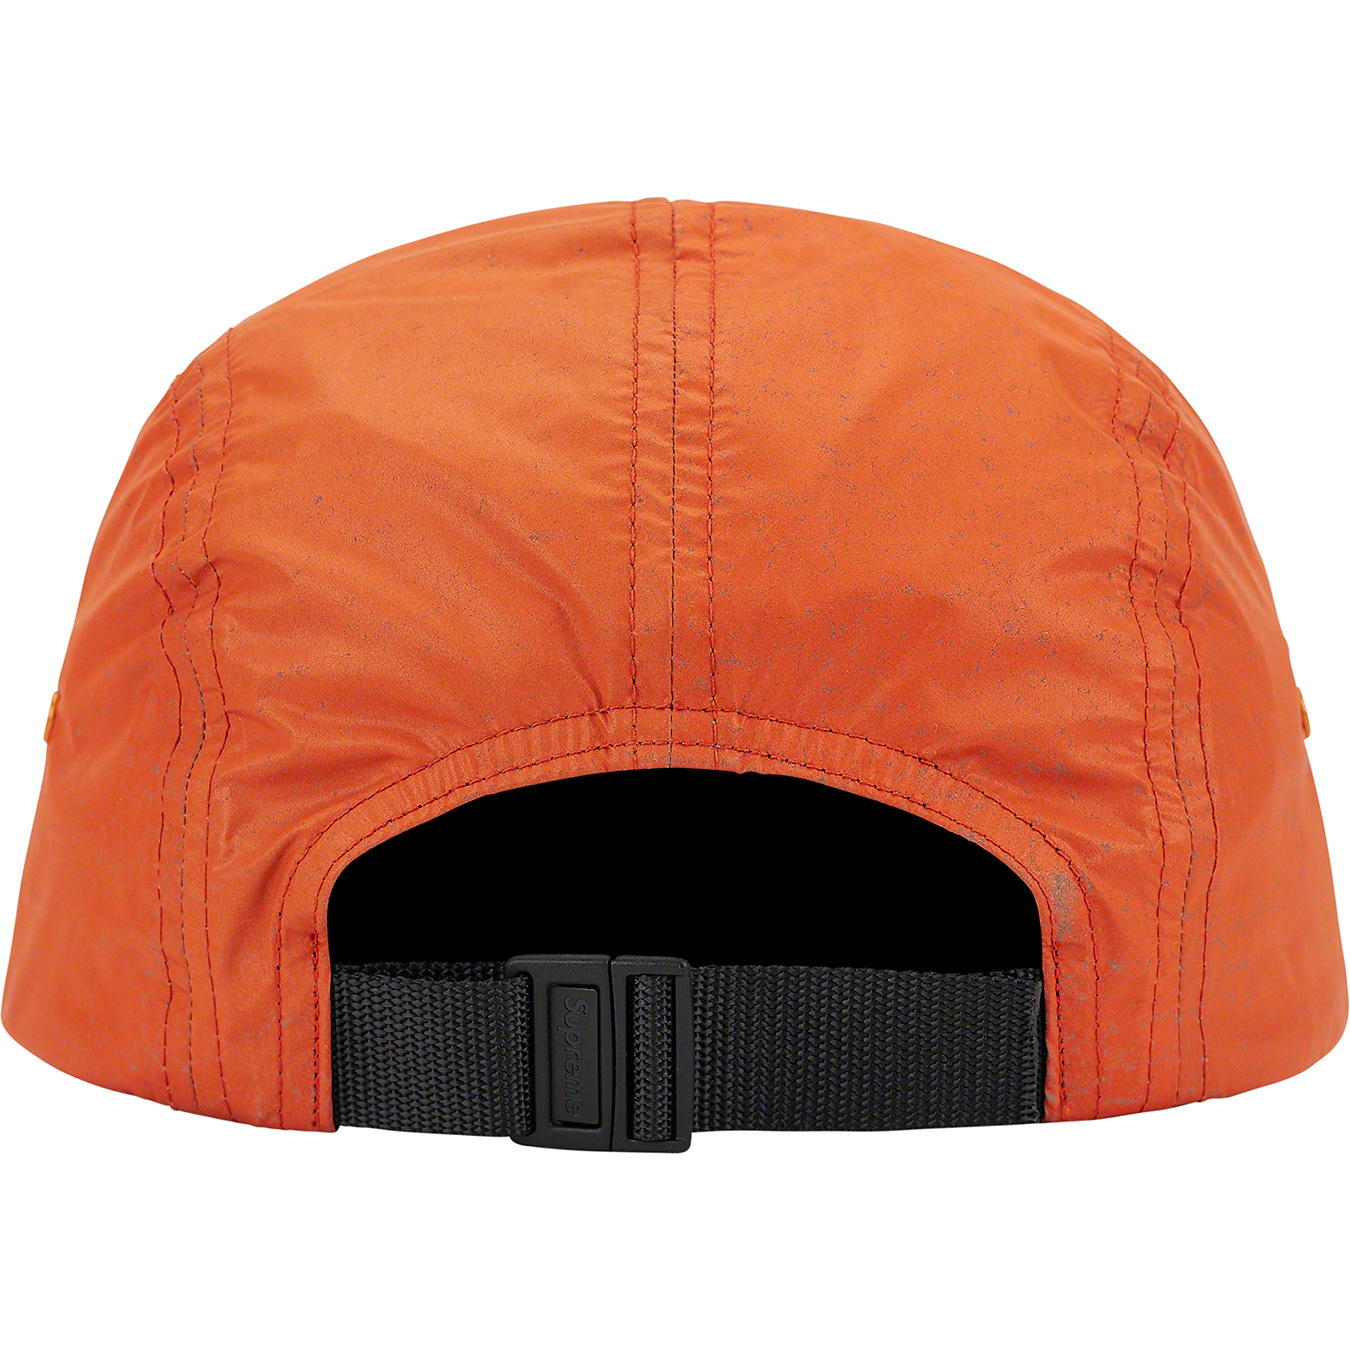 supreme-20aw-20fw-reflective-speckled-camp-cap